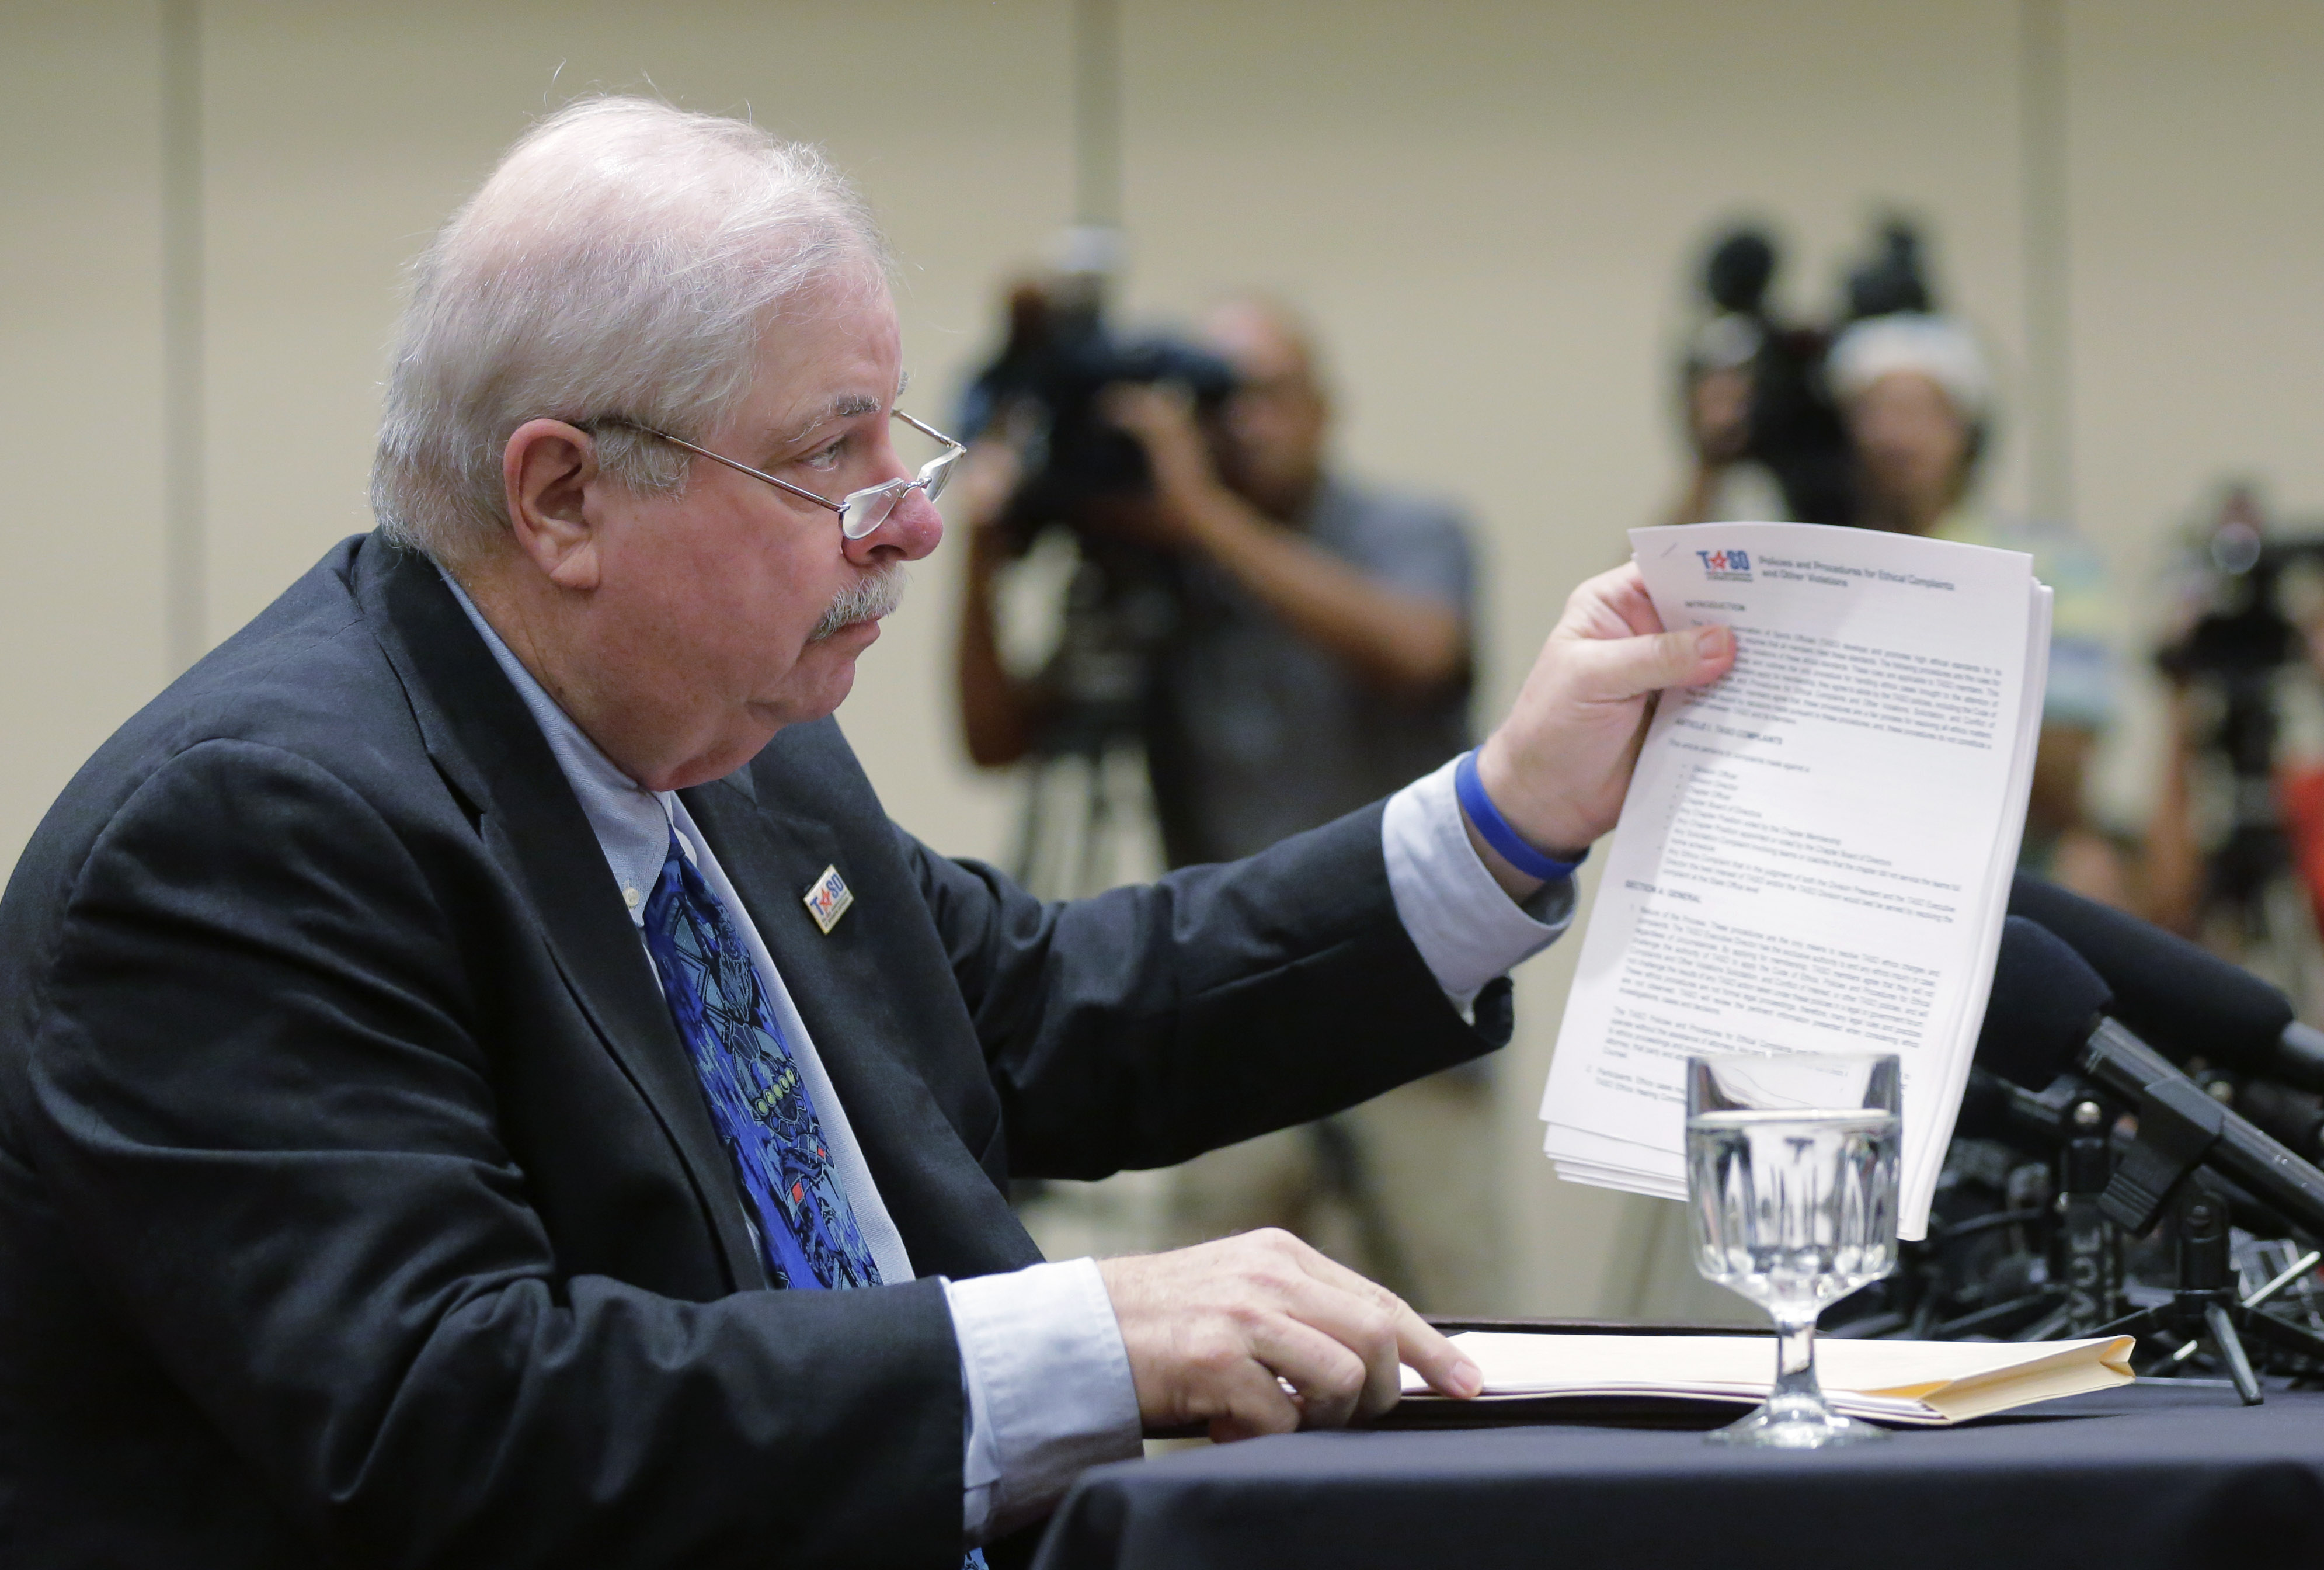 Mike Fitch, Executive Director of the Texas Association of Sports Officials (Photo; Eric Gay, AP)